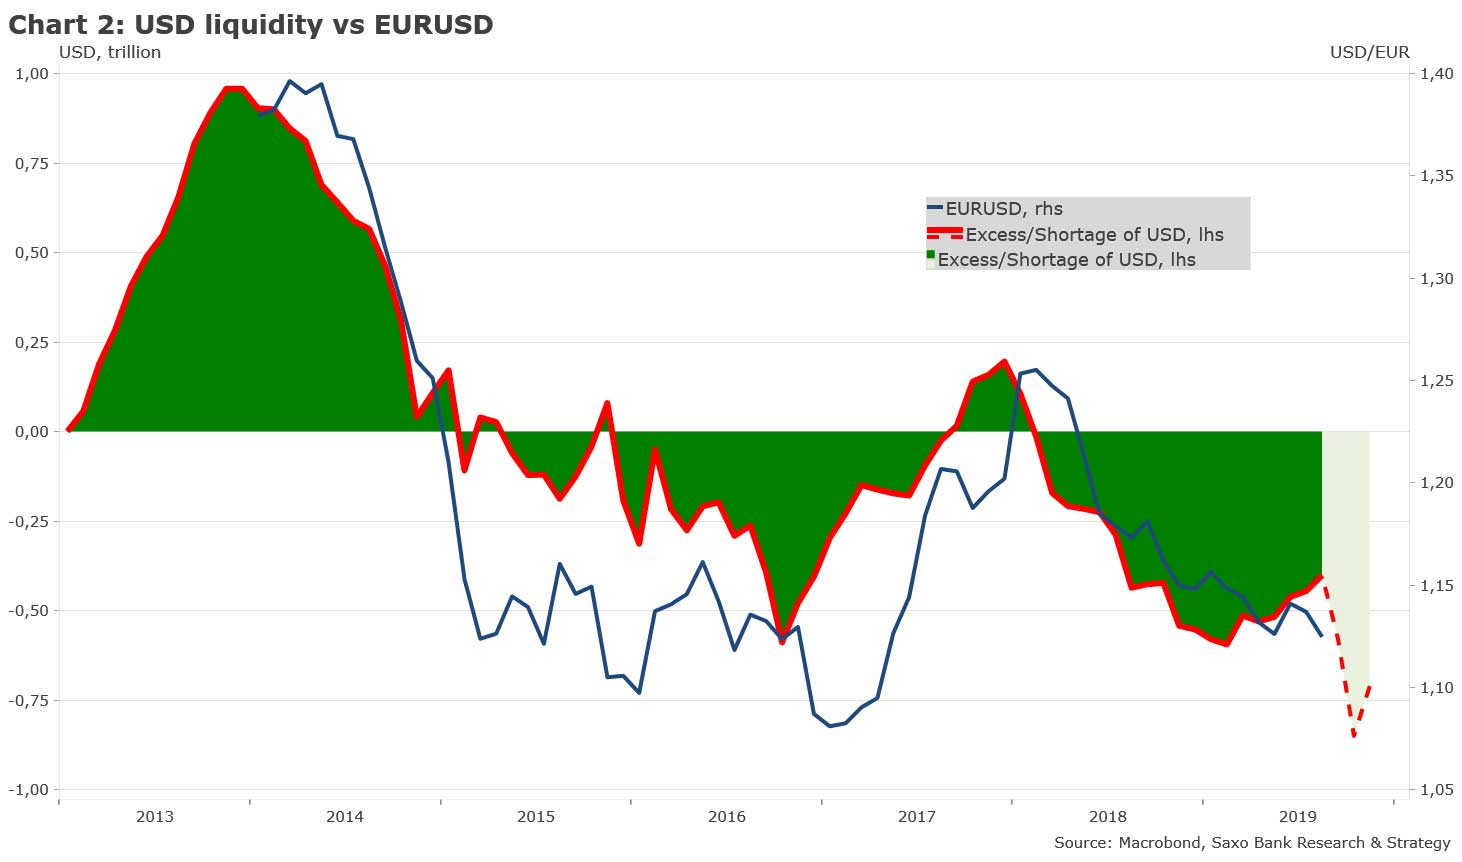 chart2-USD-liquidity-vs-EURUSD